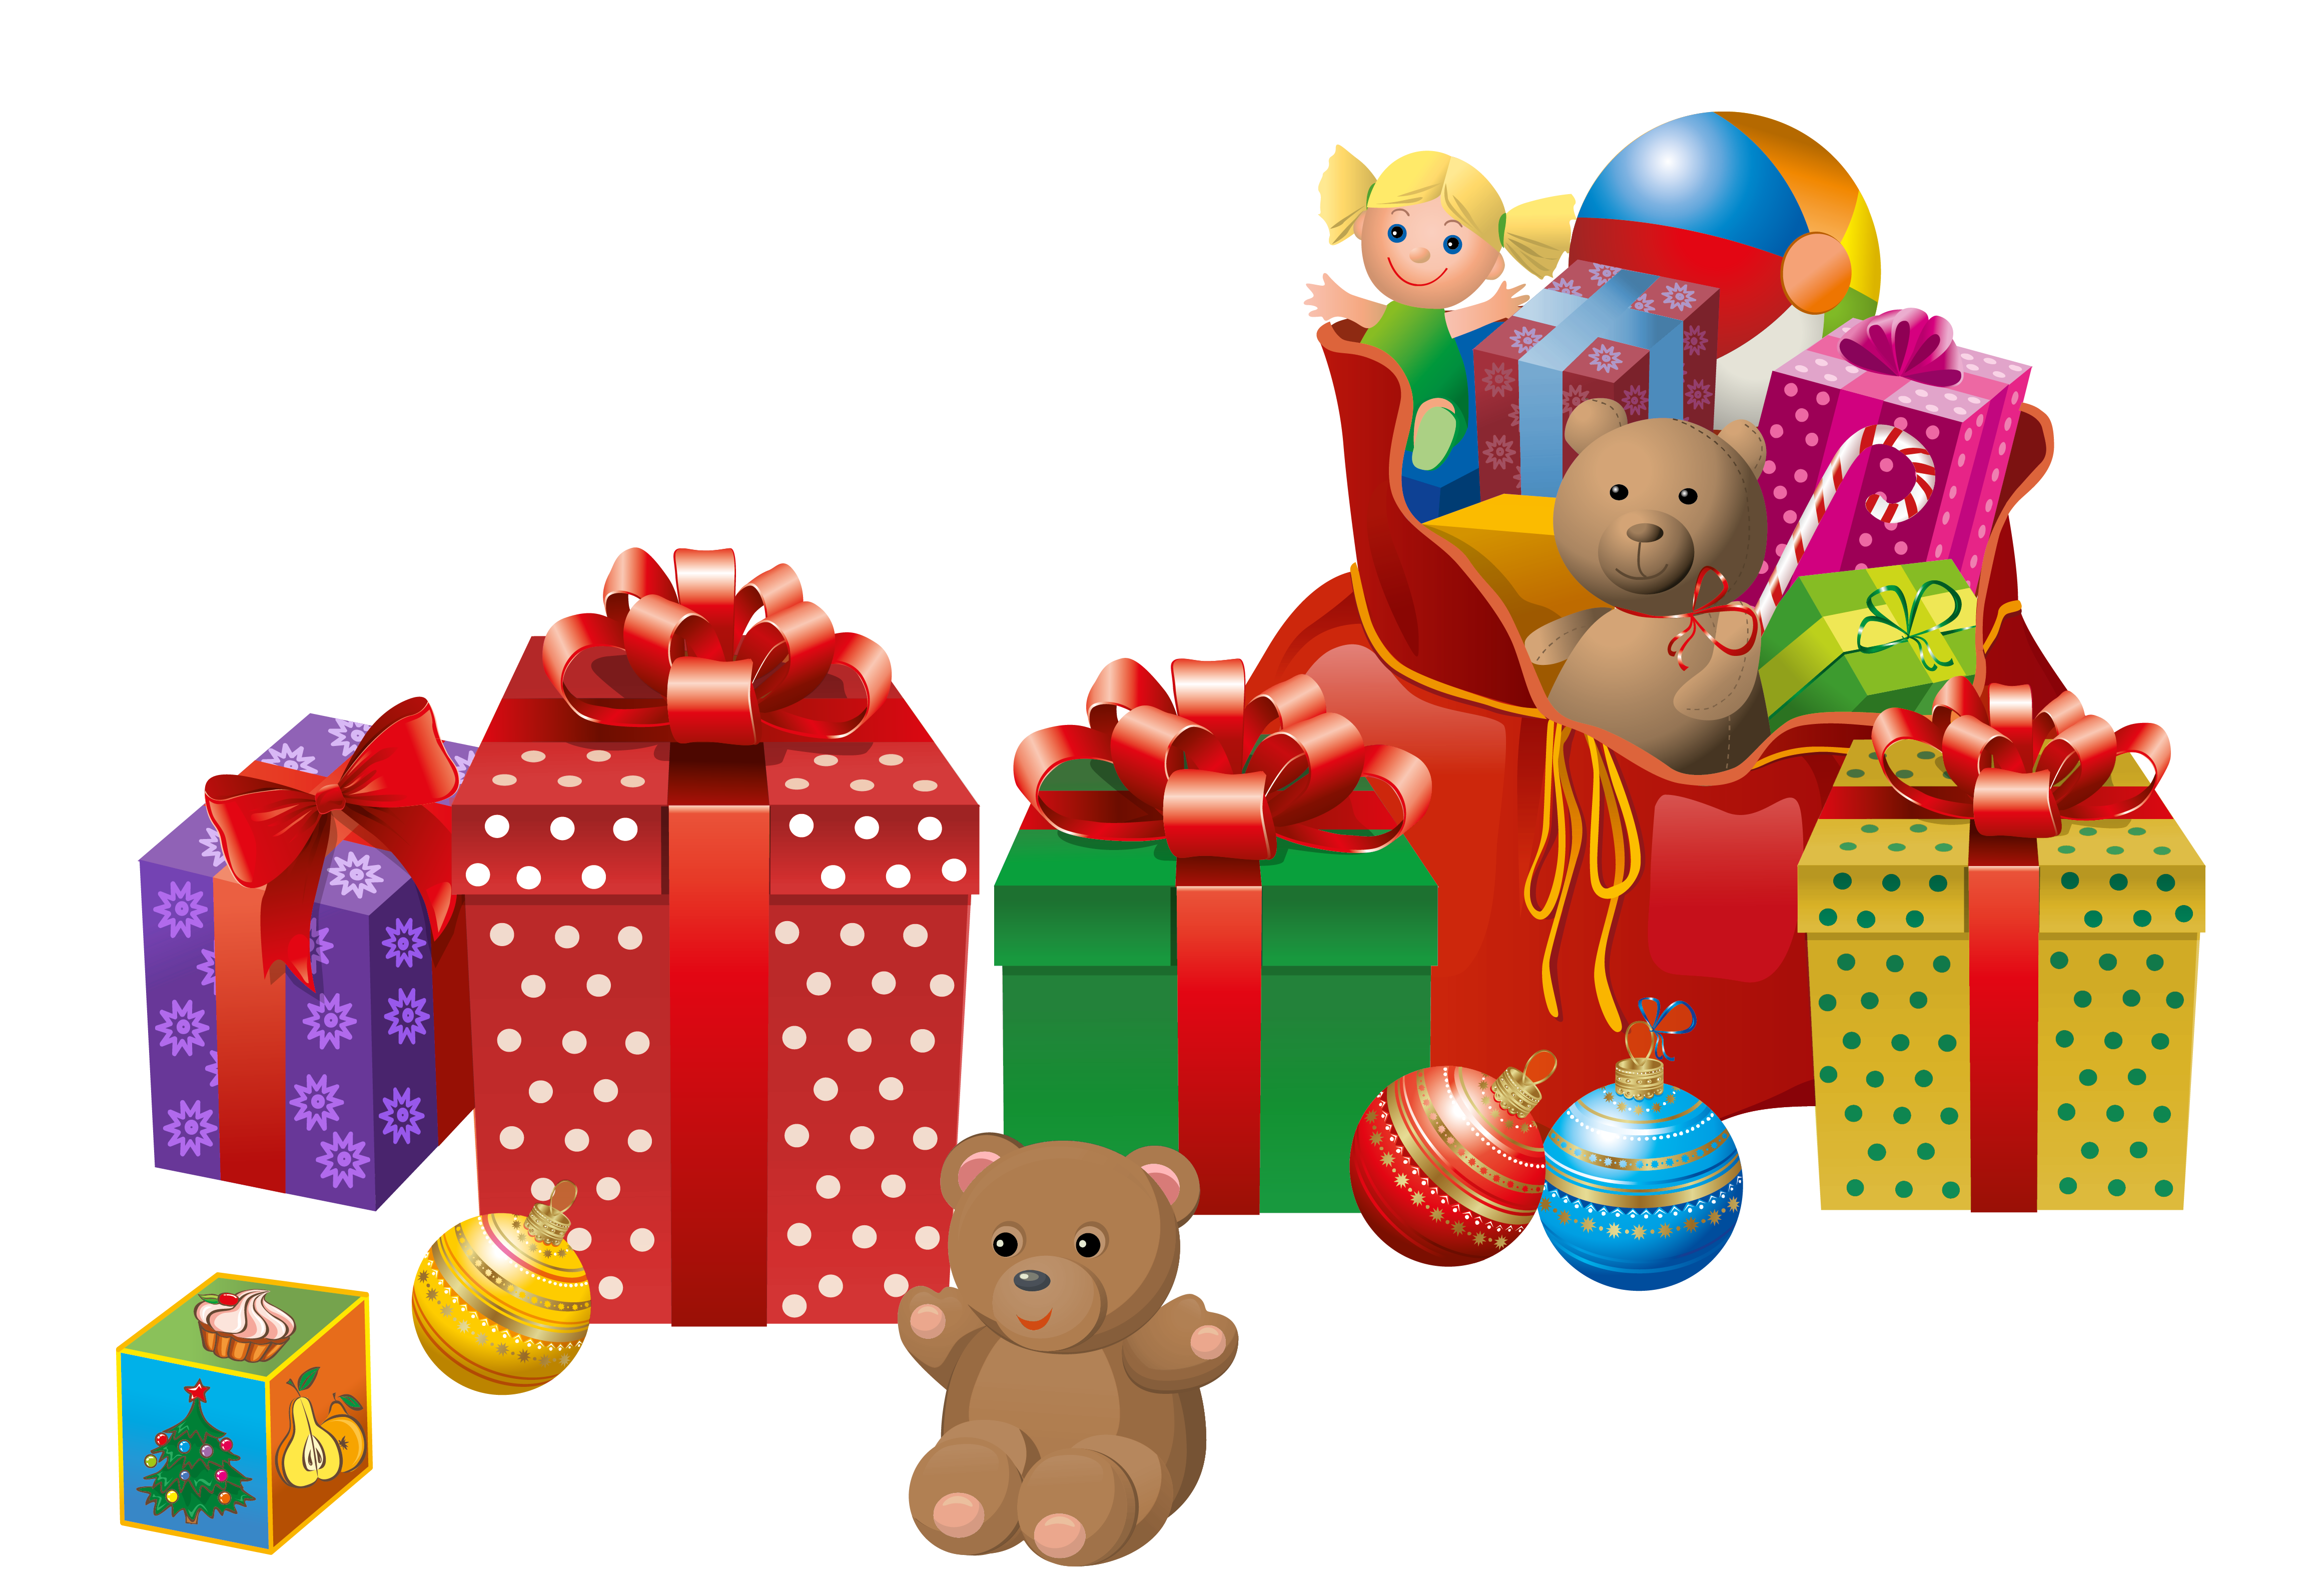 Free clipart christmas toys royalty free library Transparent Christmas Presents PNG Clipart | Gallery Yopriceville ... royalty free library